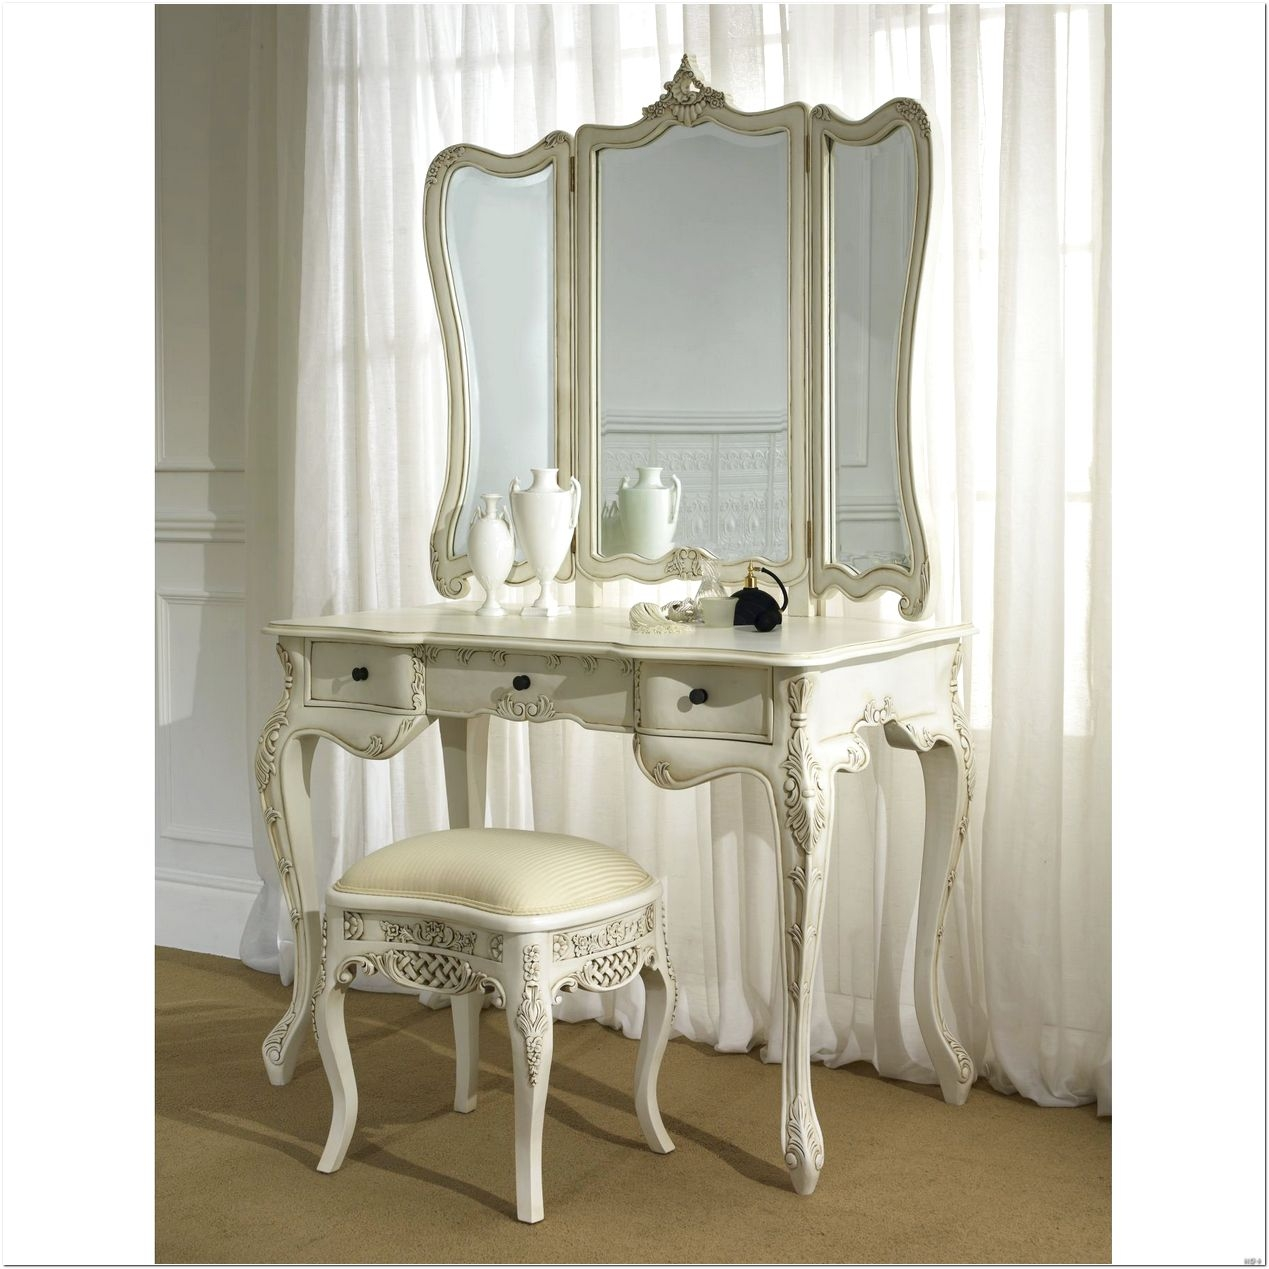 Bedroom Furniture Magnifying Mirrors Makeup Organization Throughout Illuminated Dressing Table Mirrors (Image 3 of 15)